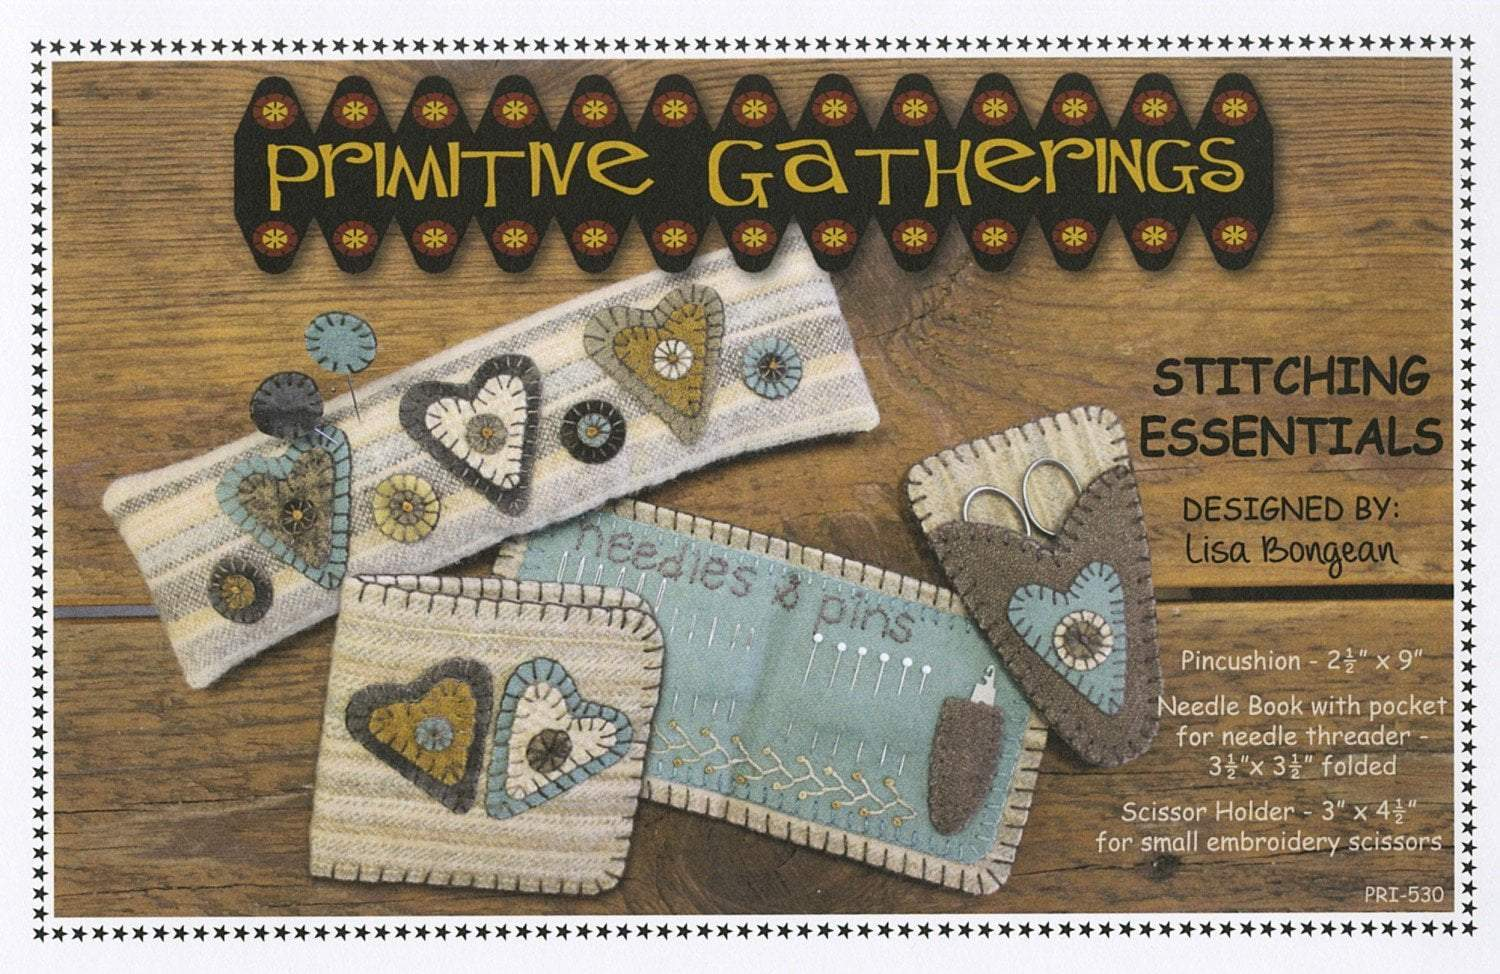 Stitching Essentials - Needle and scissor holder pattern- Primitive Gatherings -Lisa Bongean -Primitive, Wool applique, precut friendly #530 - RebsFabStash